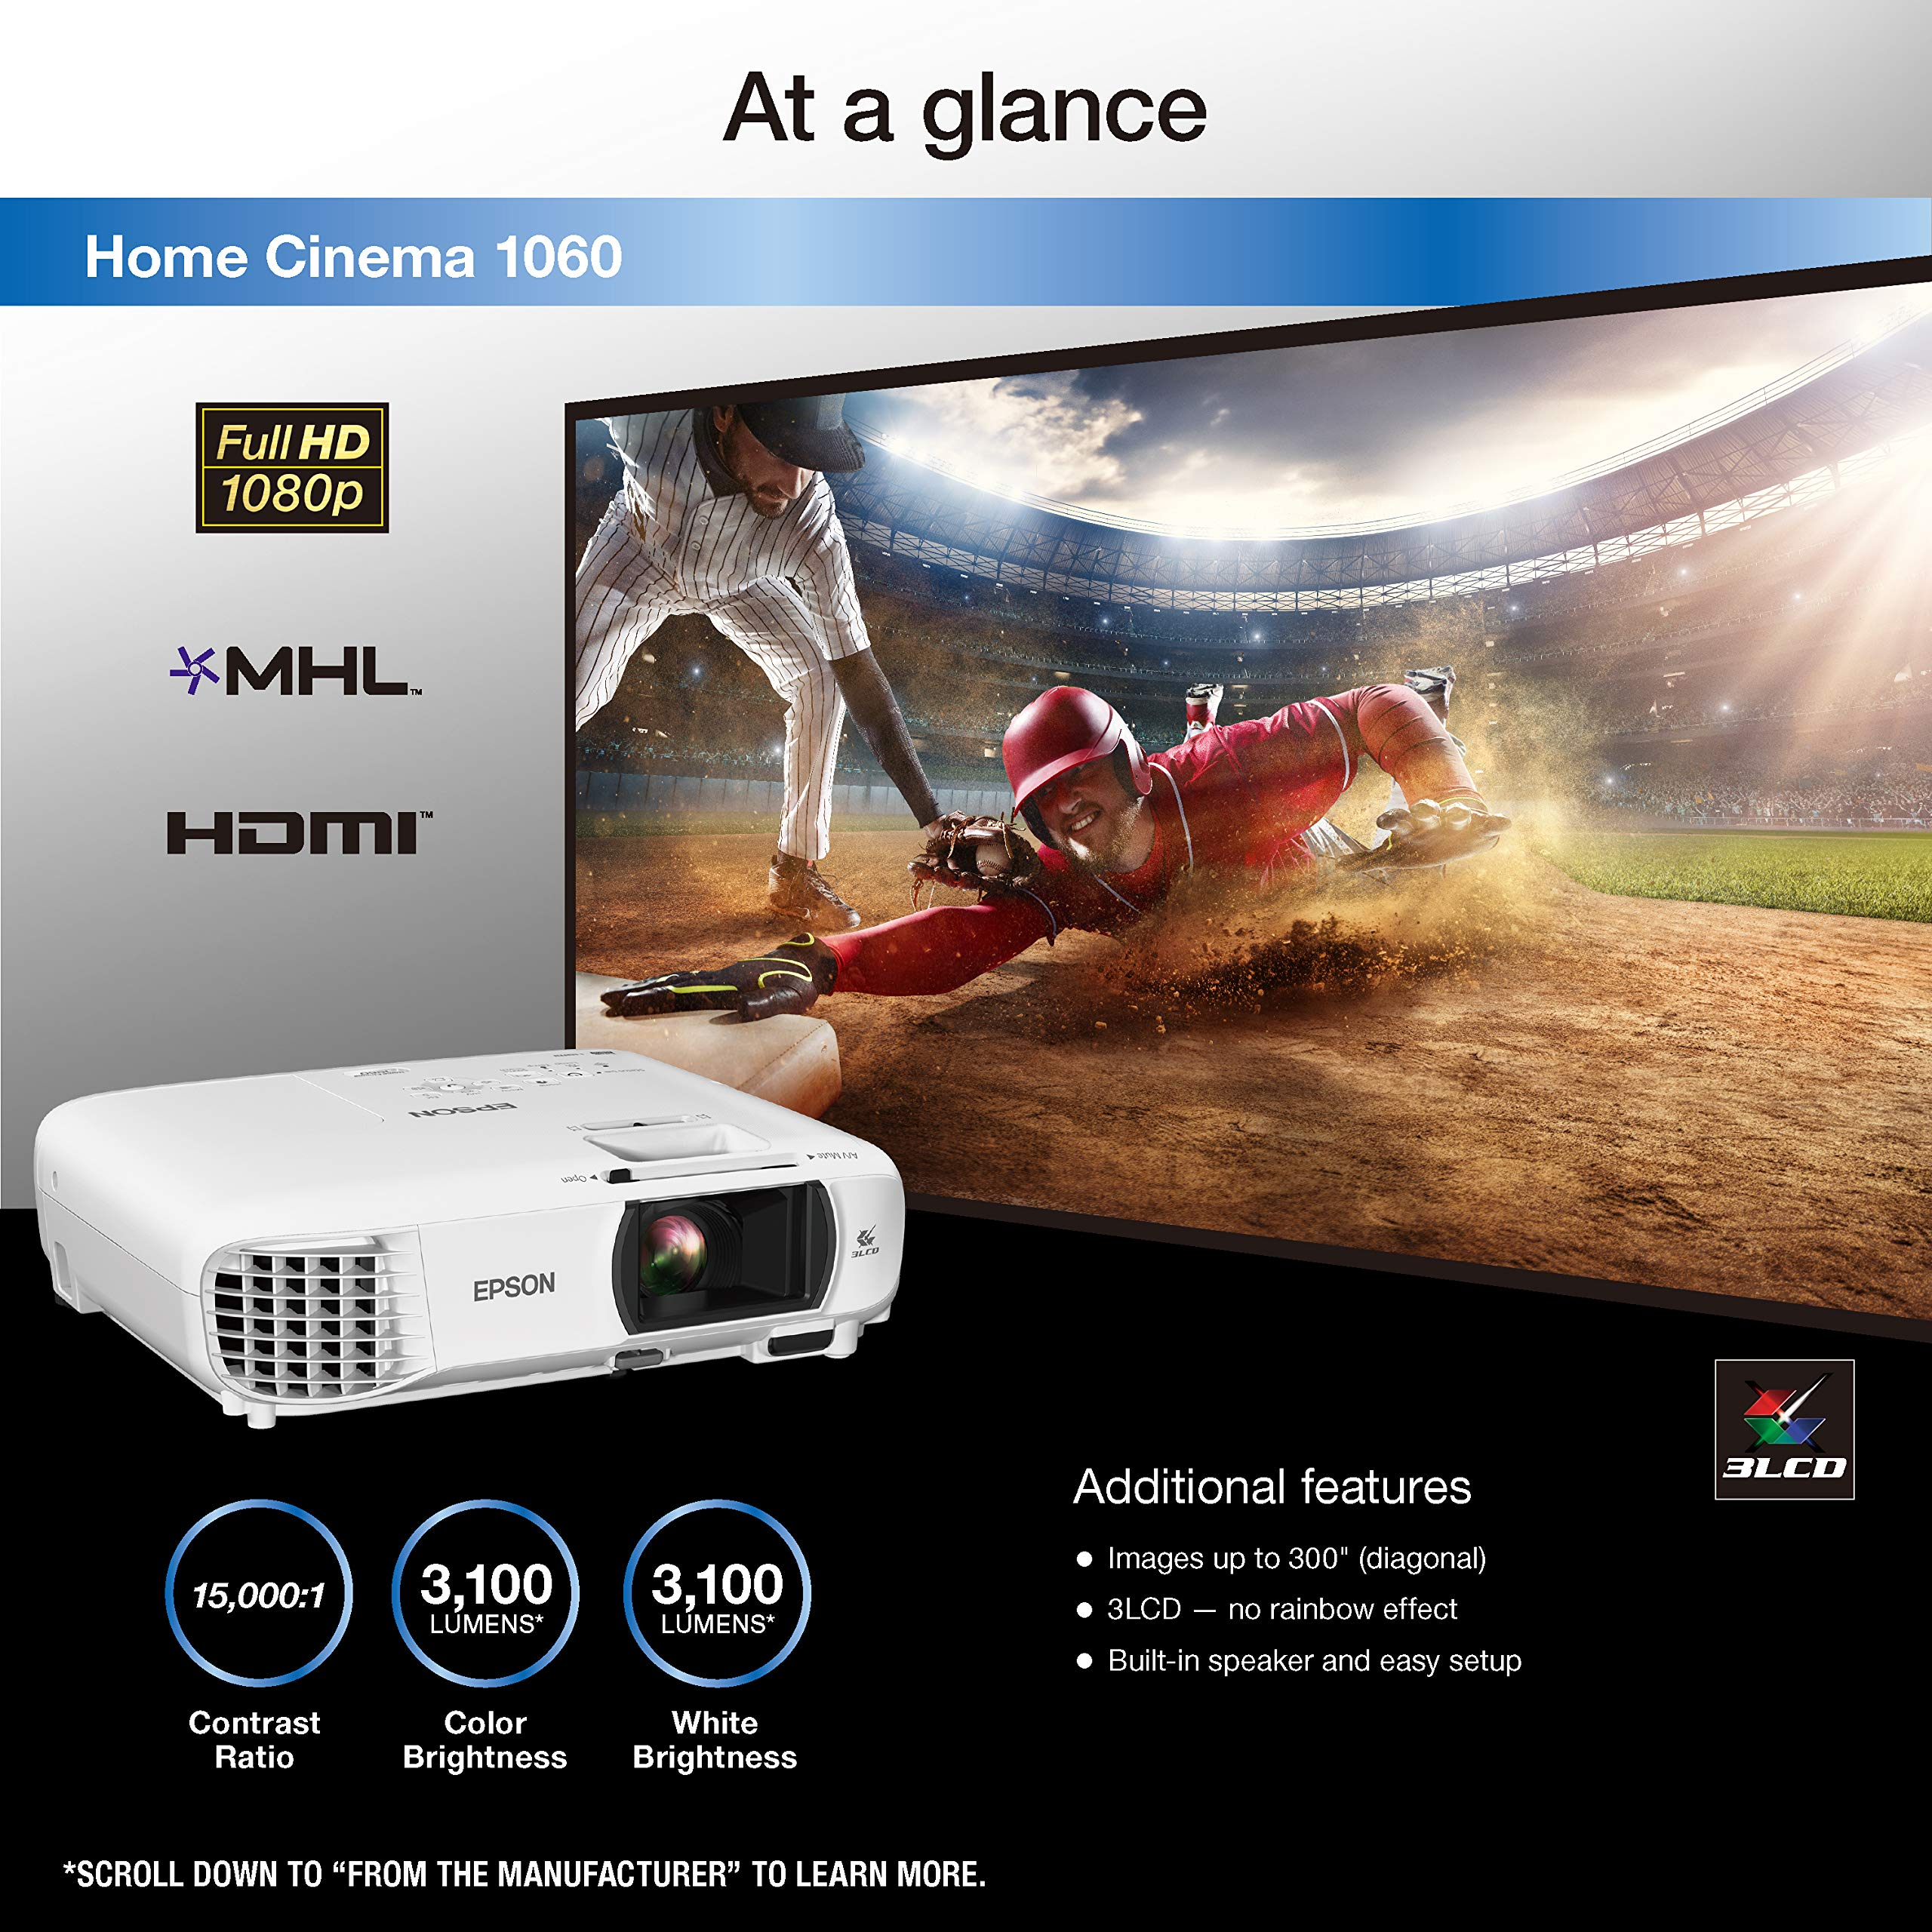 Epson Home Cinema 1060 Full HD 1080p 3,100 lumens Color Brightness (Color Light Output) 3,100 lumens White Brightness (White Light Output) 2X HDMI (1x MHL) Built-in Speakers 3LCD Projector (Renewed) by Epson (Image #2)